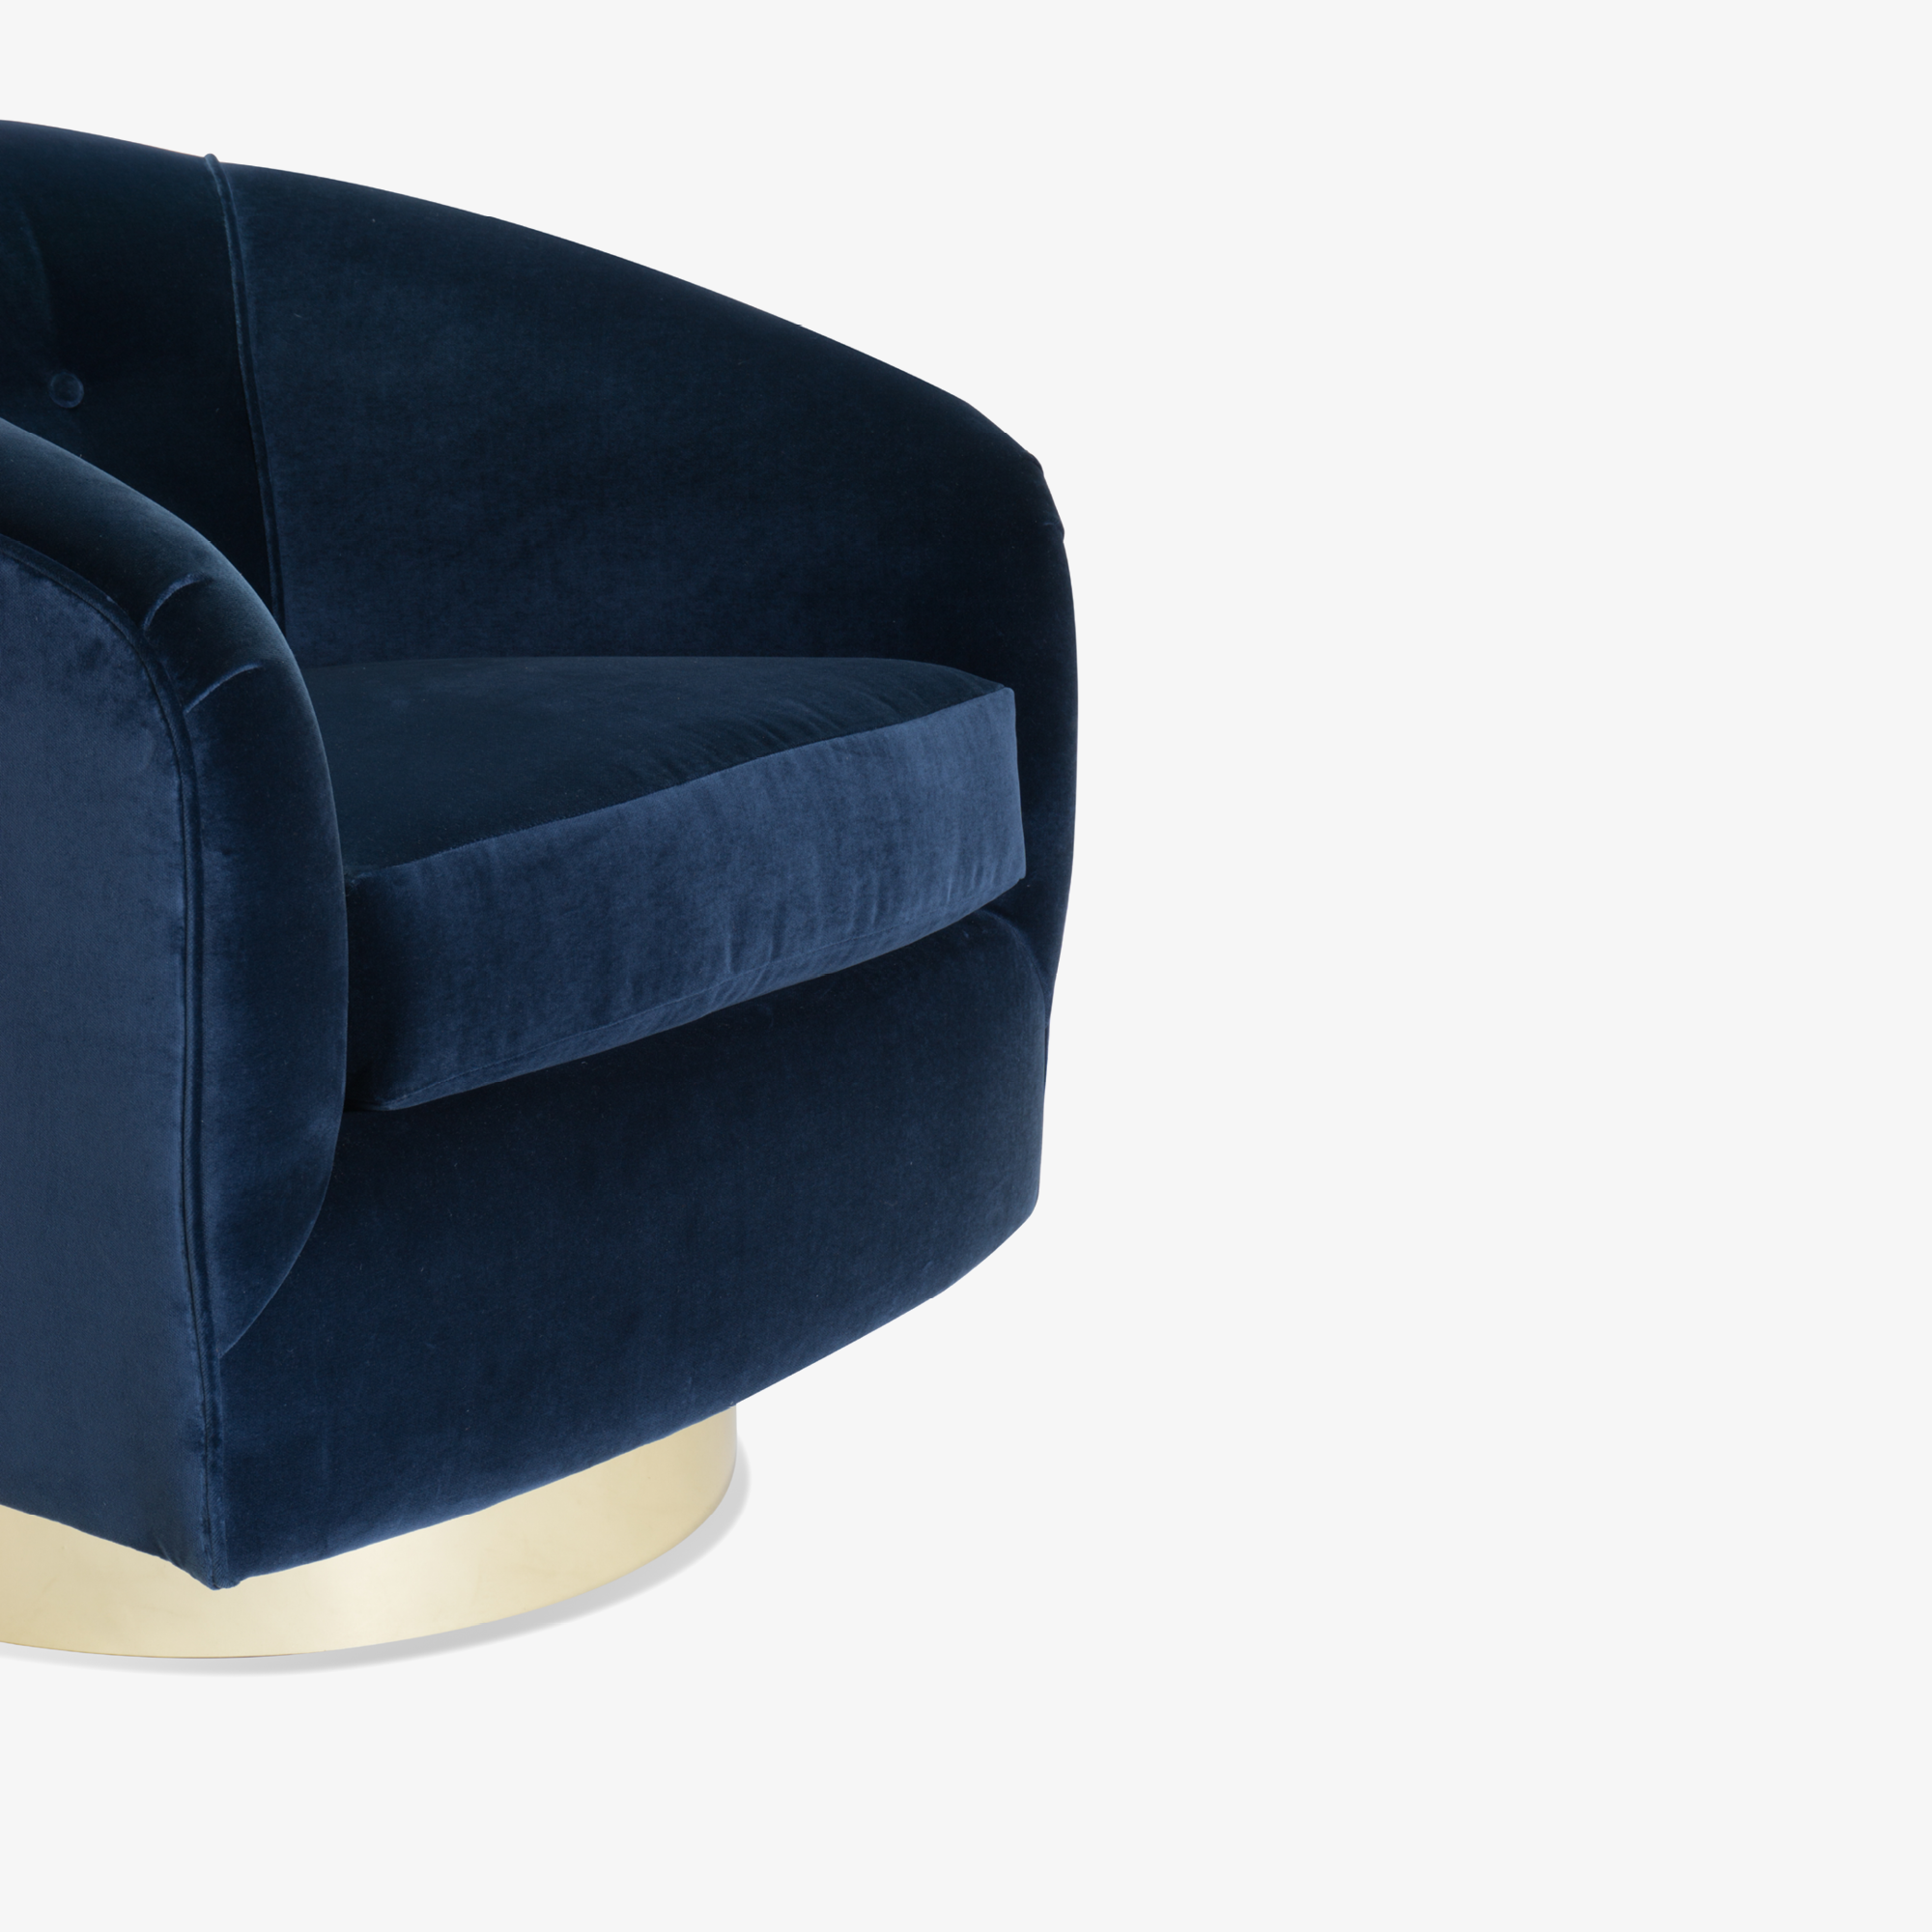 Swivel Tub Chairs in Navy Velvet with Polished Brass Bases, Pair6.png